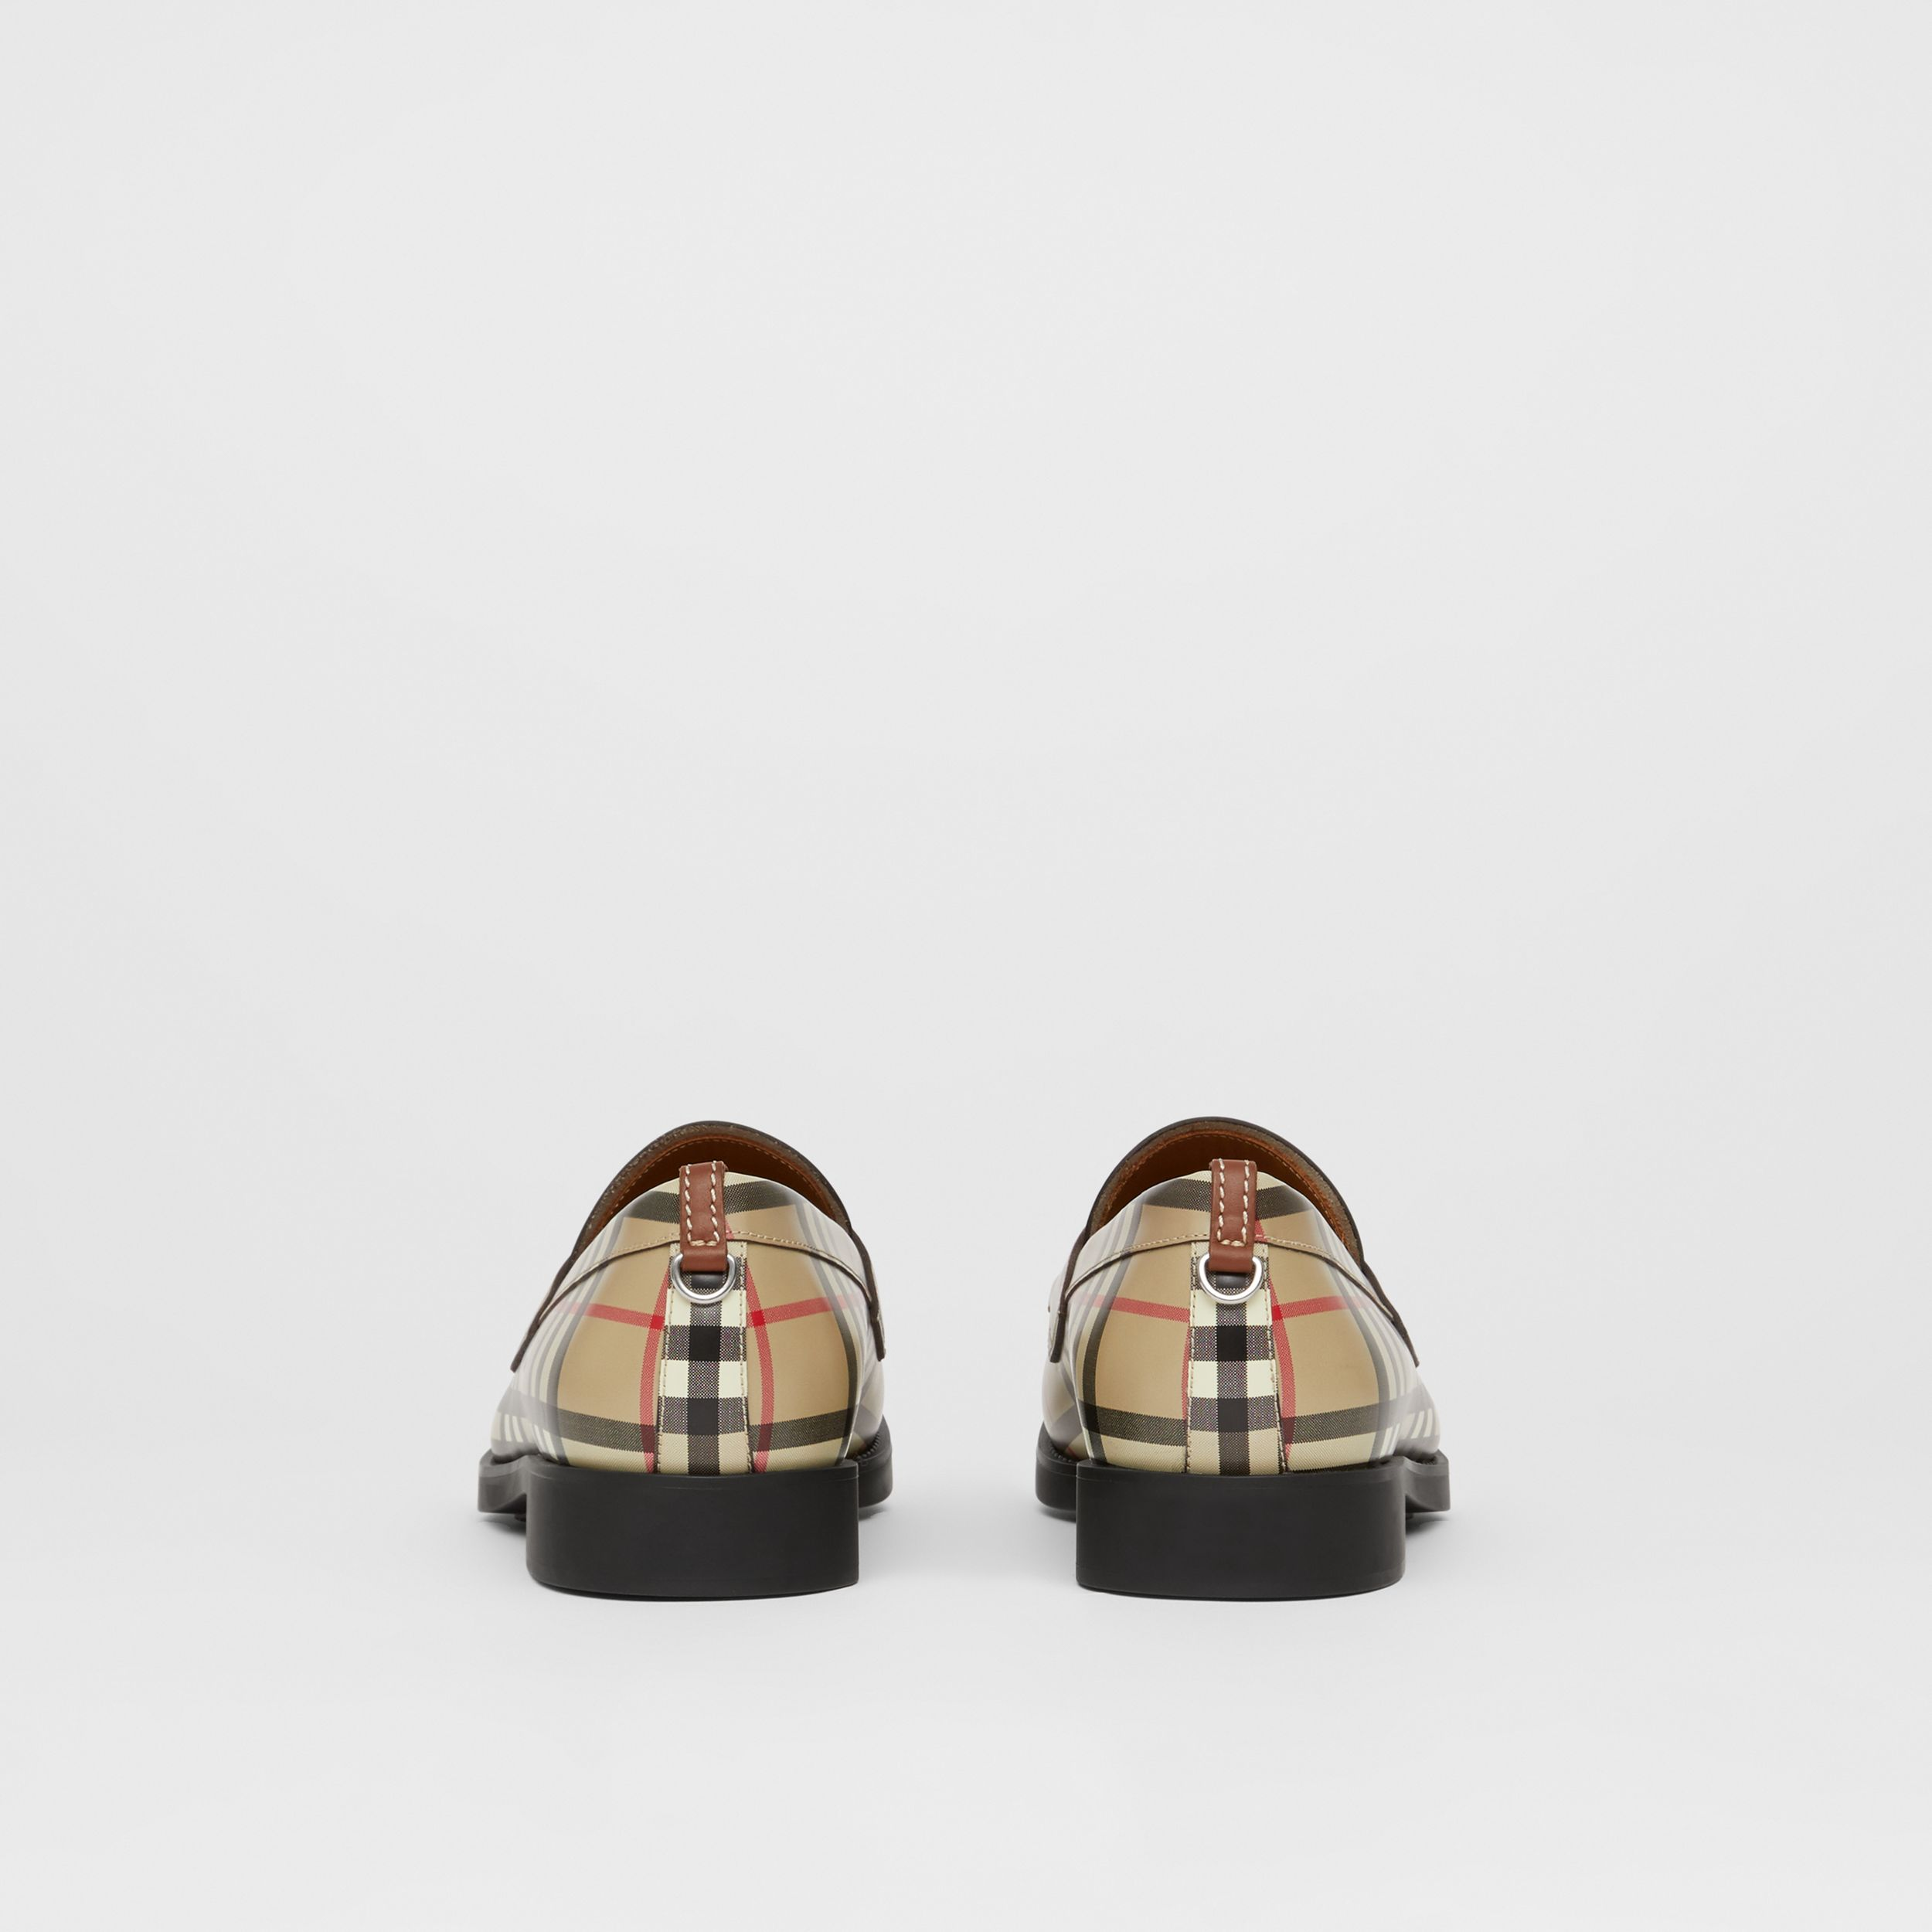 D-ring Detail Vintage Check Leather Loafers in Archive Beige - Men | Burberry - 4